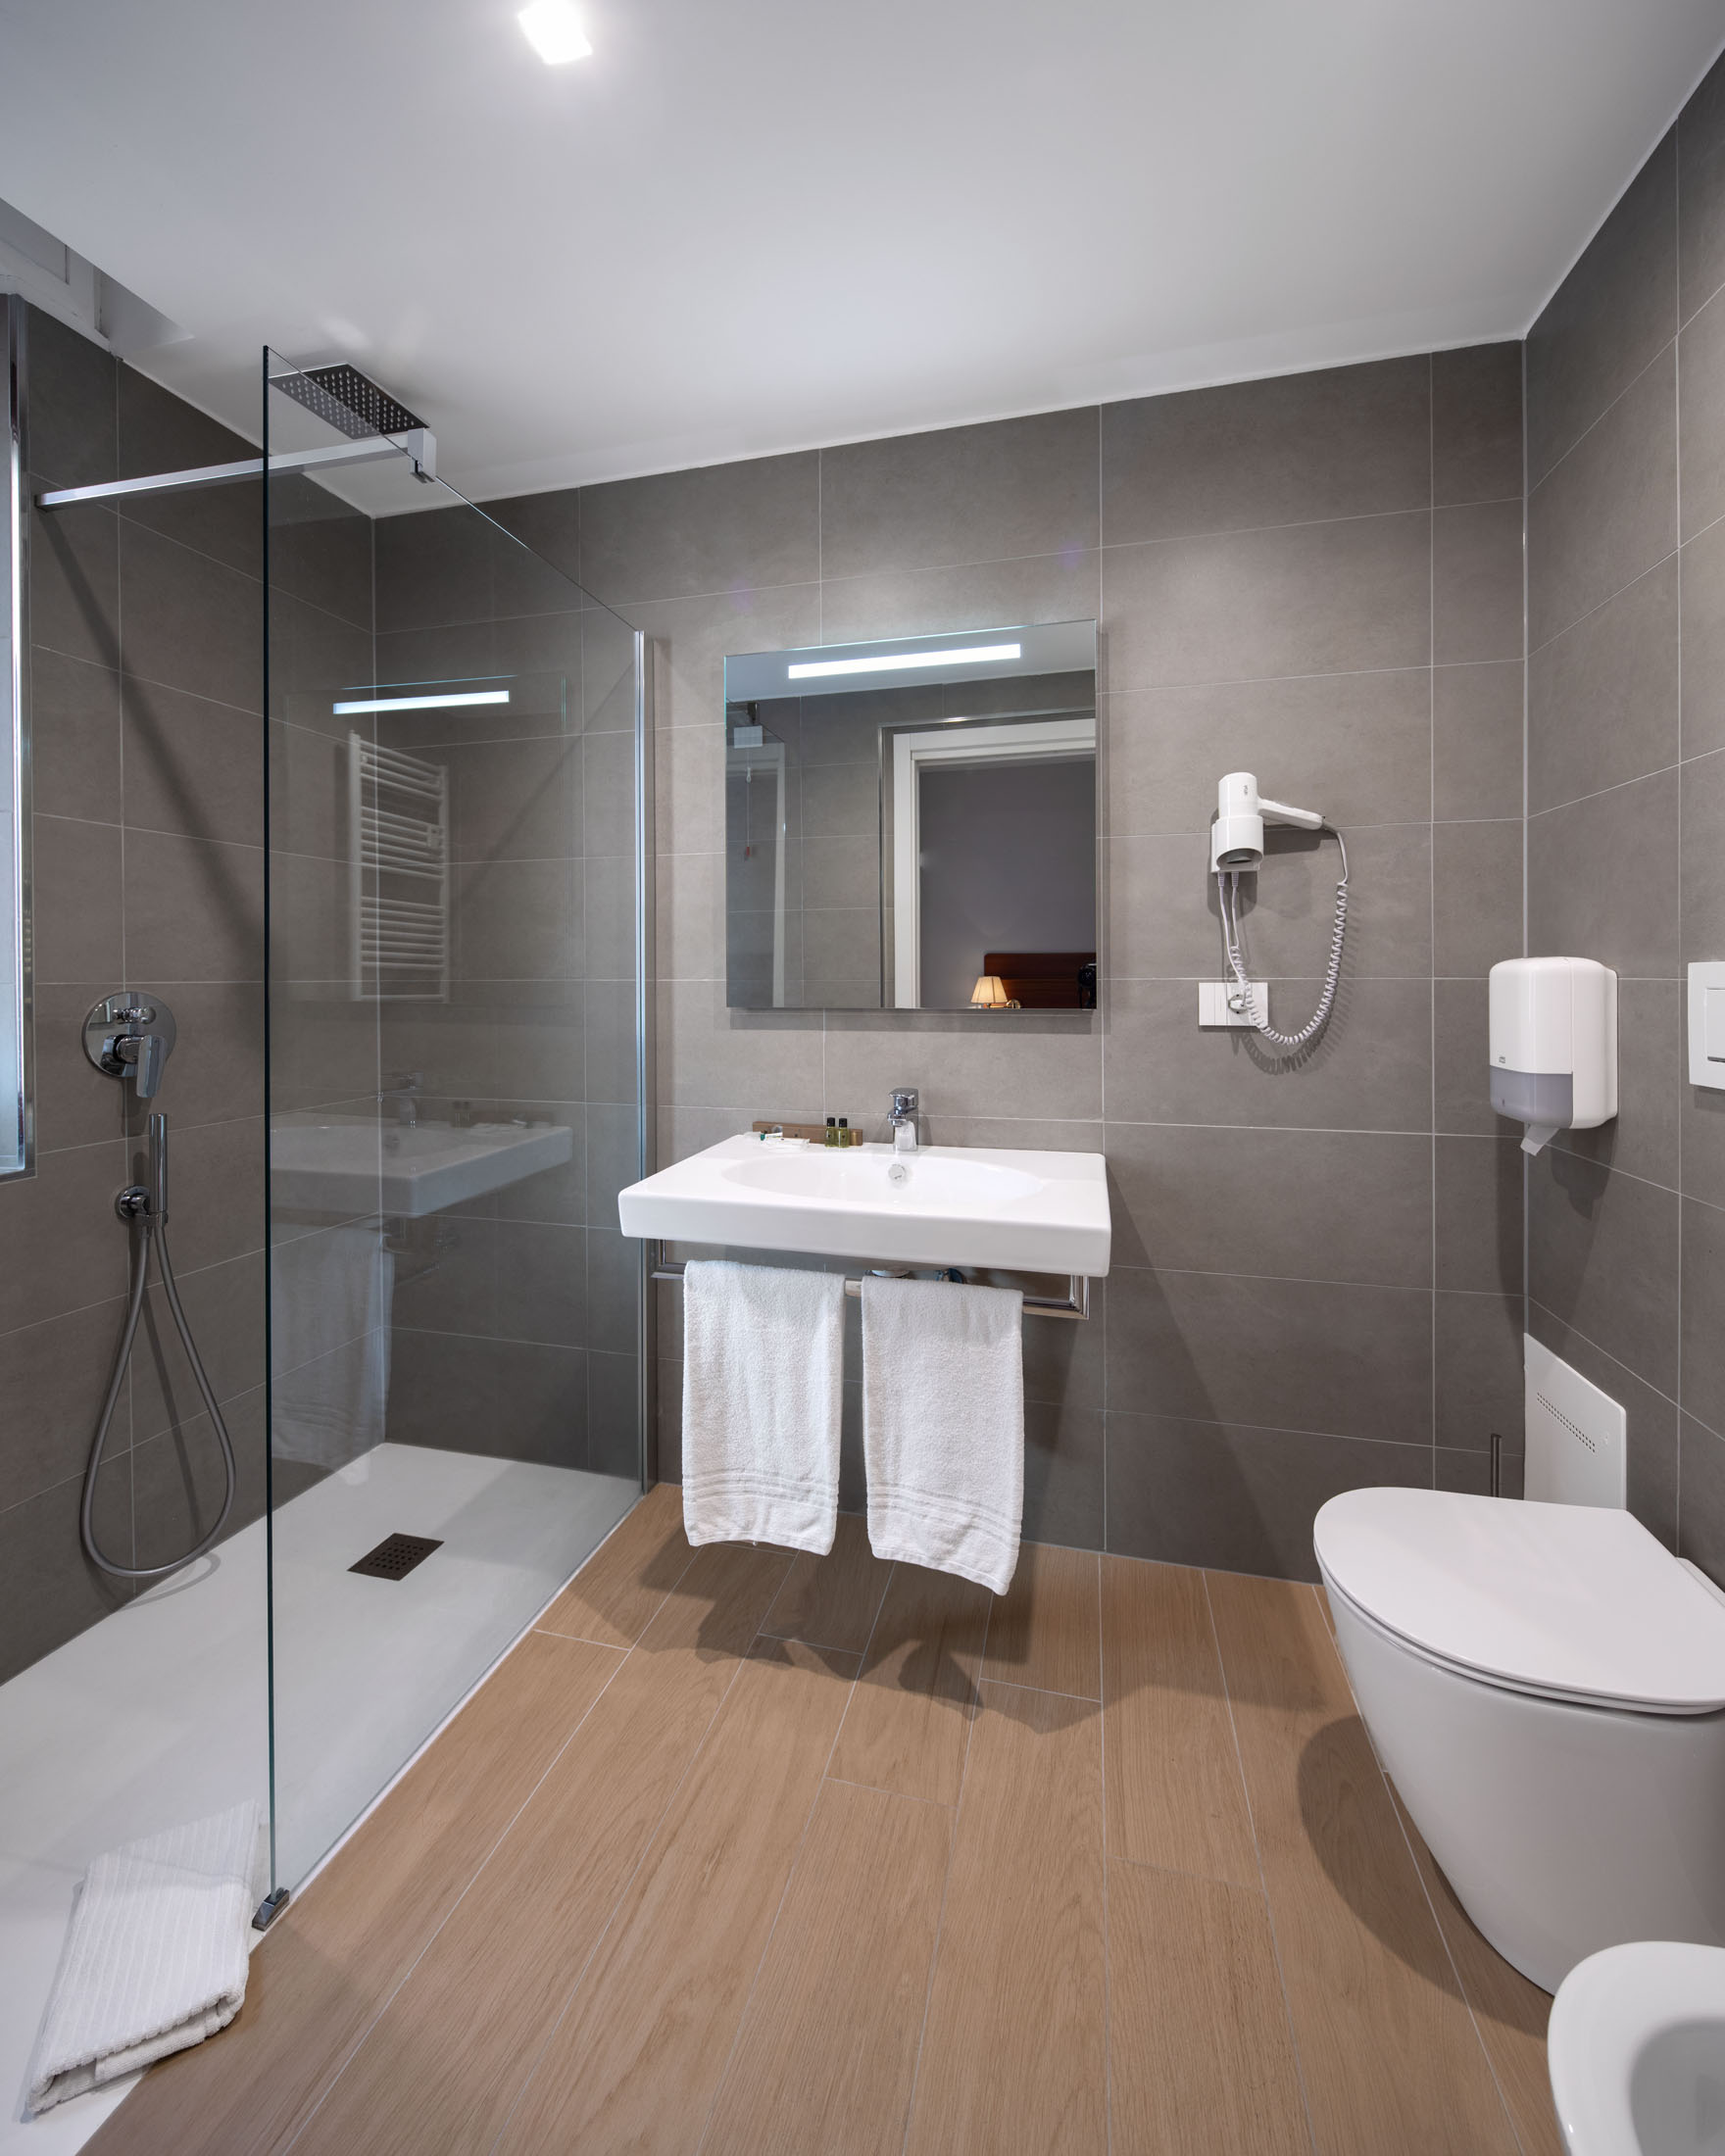 https://www.in-lombardia.it/sites/default/files/accomodation/gallery/105682/37630/excelsior_pavia_20.jpg